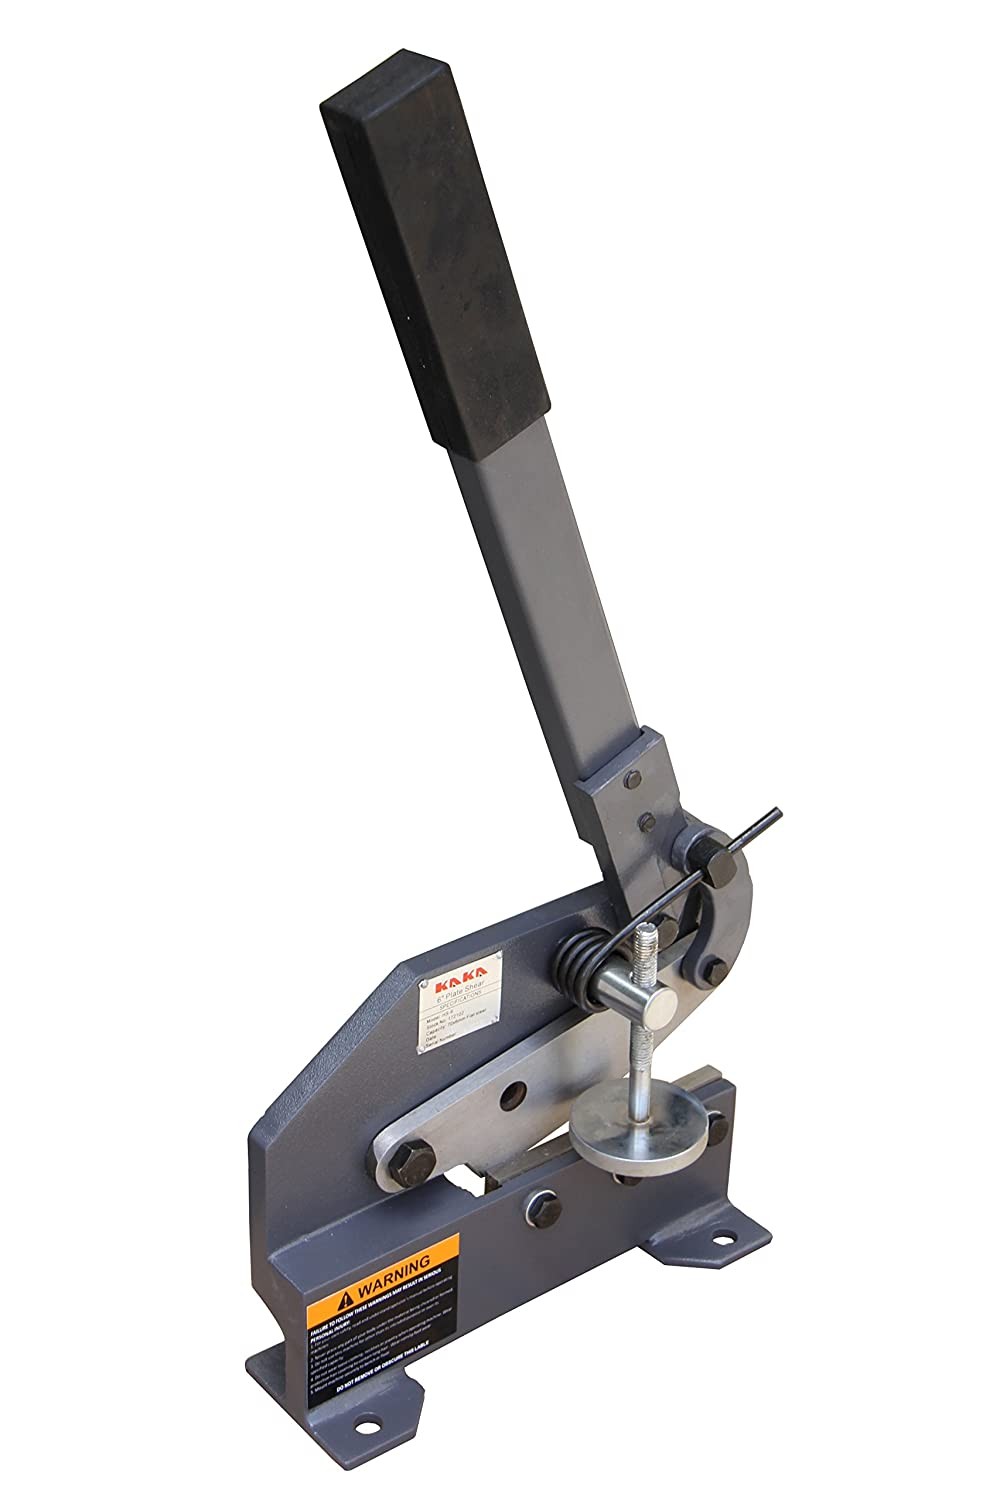 Kaka Industrial Hs 6 Inch Sheet Metal Plate Shear Heavy Steel Cut Pcb Circuit Board Cutter Manual For Cutting Frame Mounting Type High Accuracy Hand